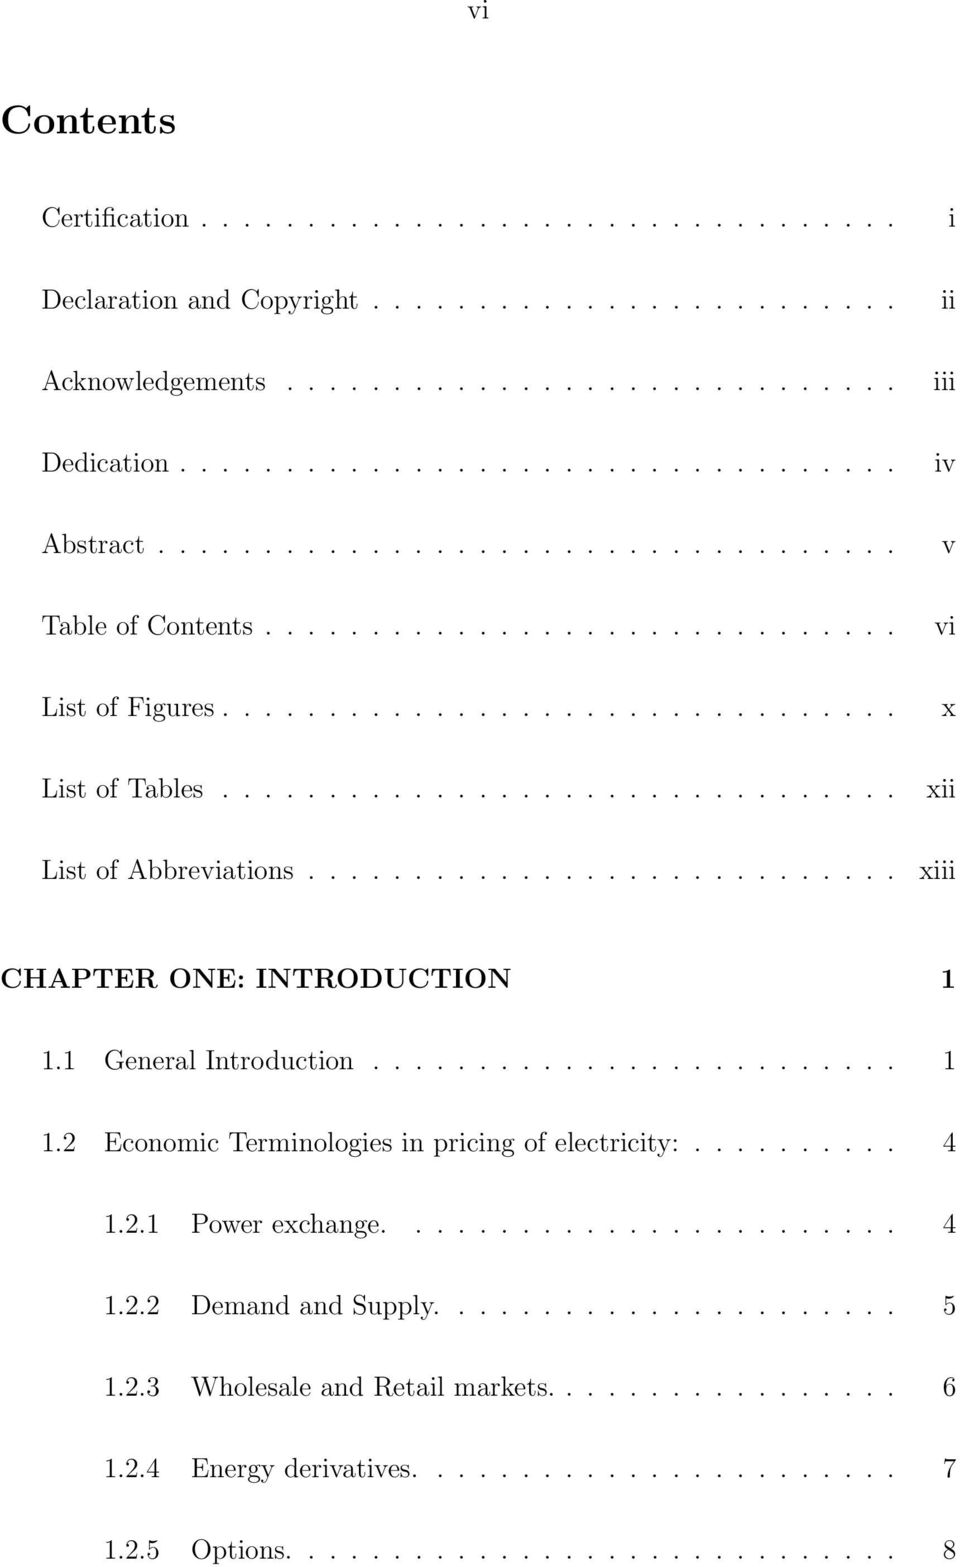 ........................... xiii CHAPTER ONE: INTRODUCTION 1 1.1 General Introduction......................... 1 1.2 Economic Terminologies in pricing of electricity:.......... 4 1.2.1 Power exchange.